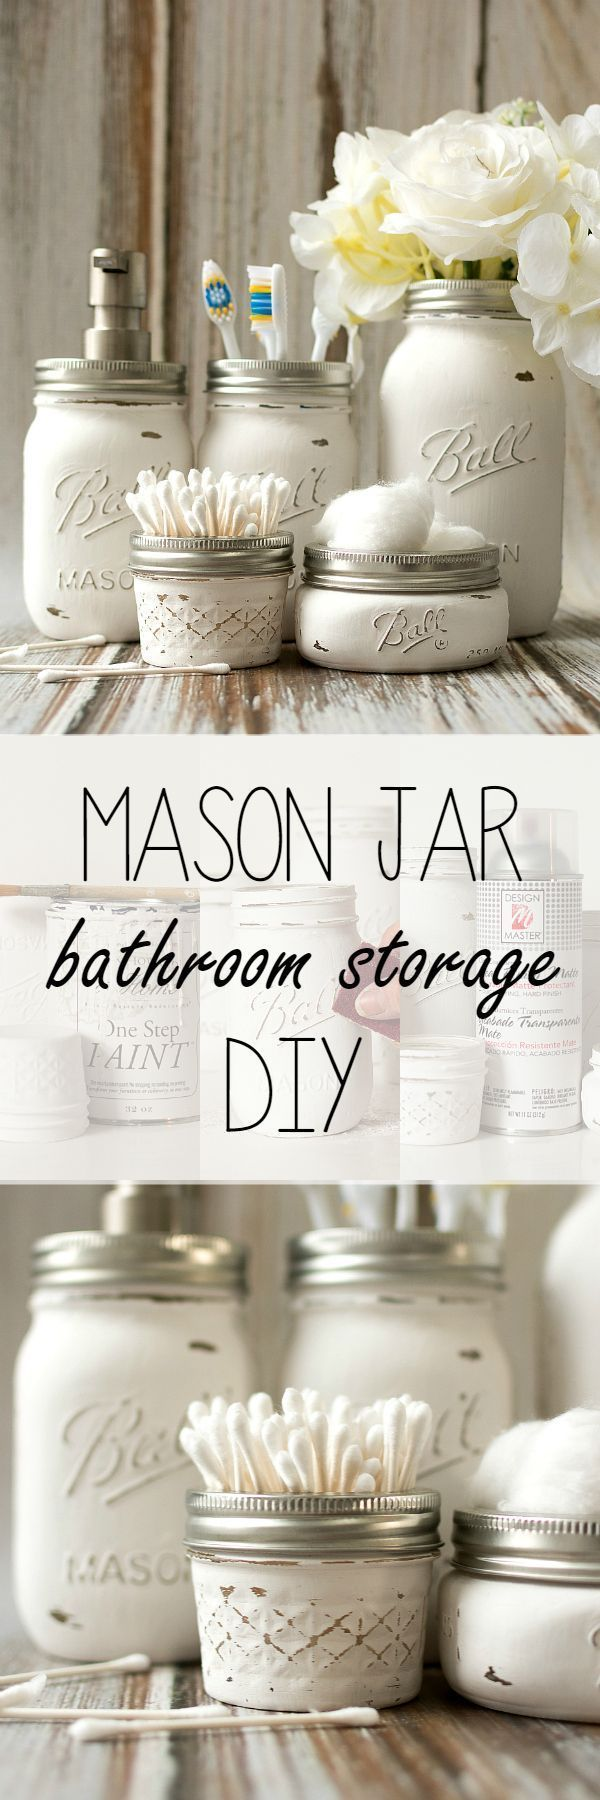 Mason Jar Bathroom Storage   Accessories  Mason Jar BathroomBathroom  IdeasDiy  Best 10  Small bathroom storage ideas on Pinterest   Bathroom  . Diy Small Bathroom Decor Pinterest. Home Design Ideas